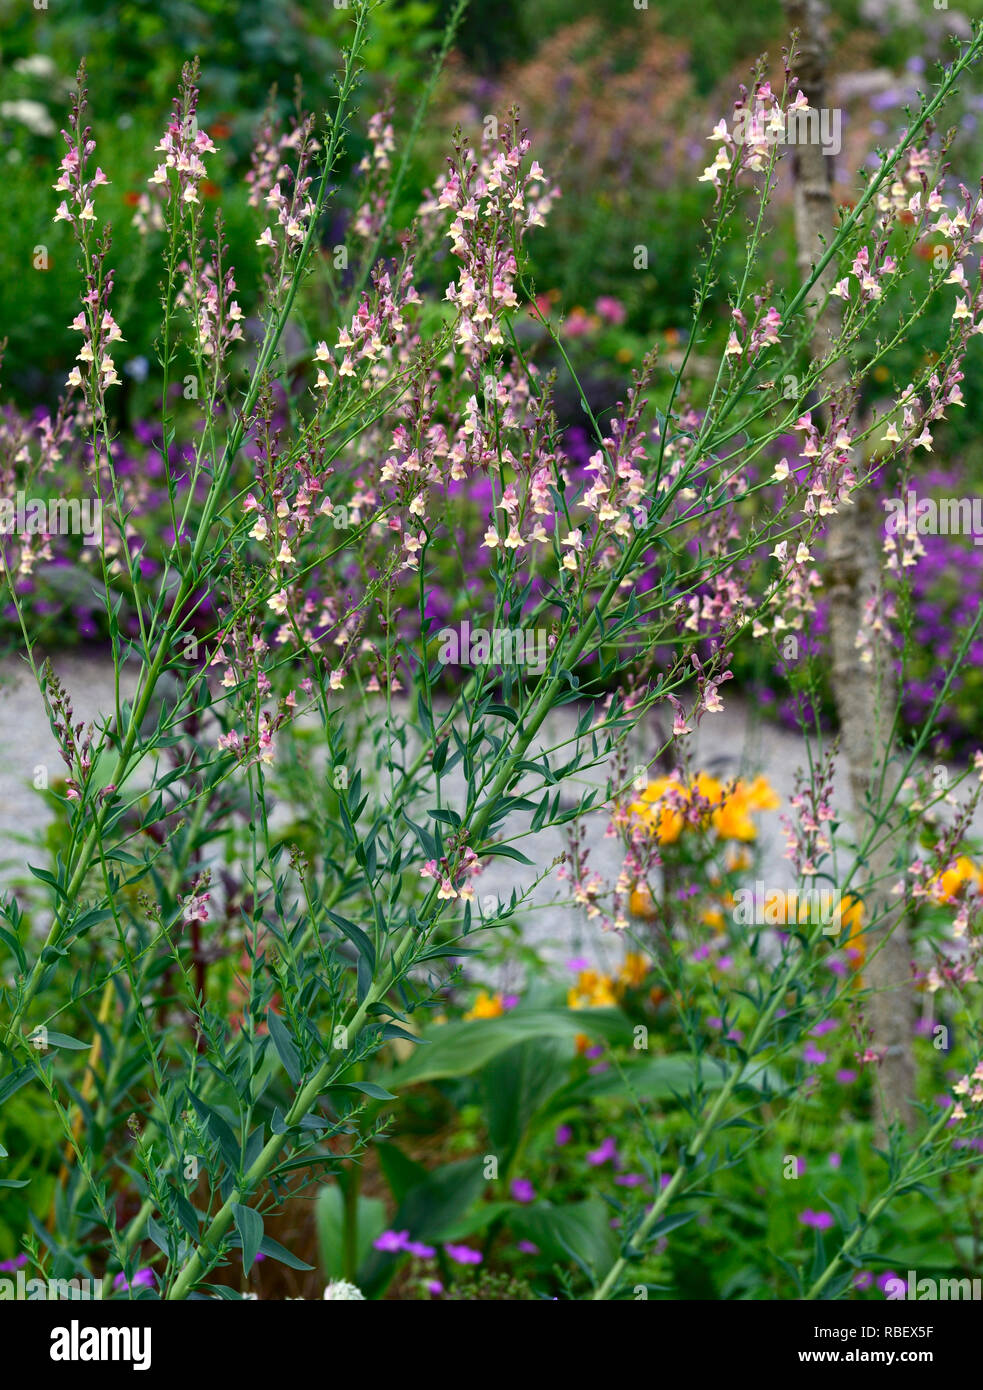 Linaria Peachy,Toadflax,peach yellow flowers,flowering stems,spires,snapdragon,RM Floral - Stock Image